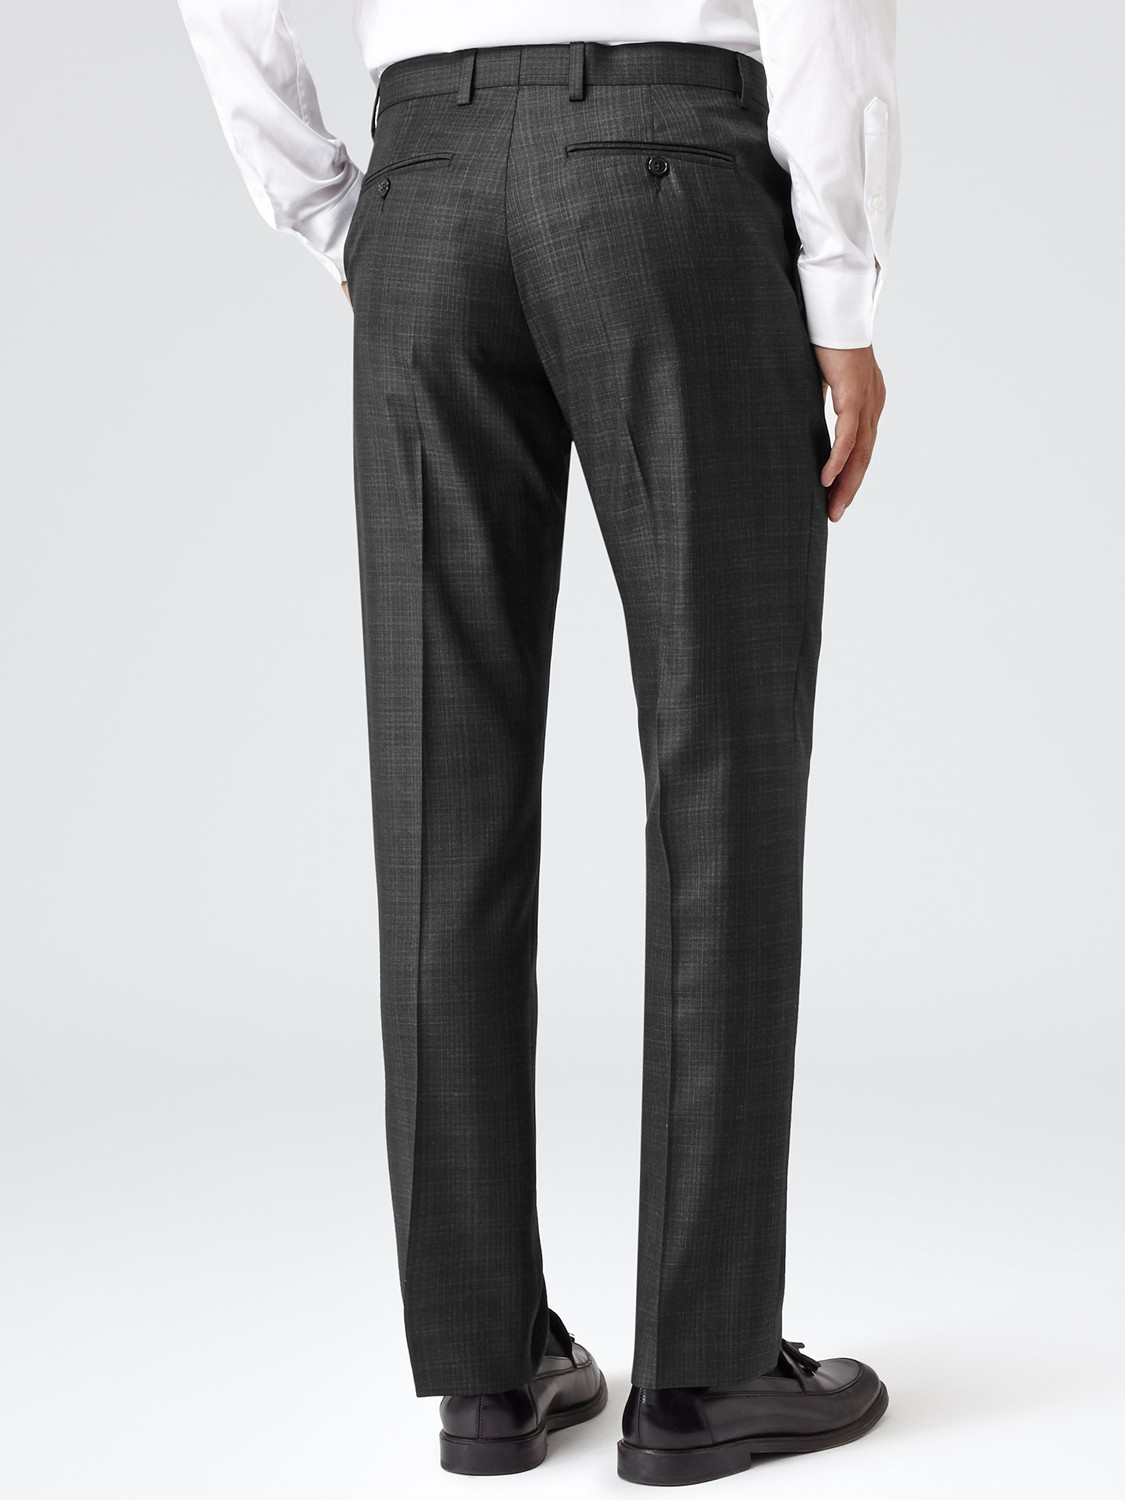 Reiss Wool Gilstone Check Suit Trousers in Charcoal (Grey) for Men